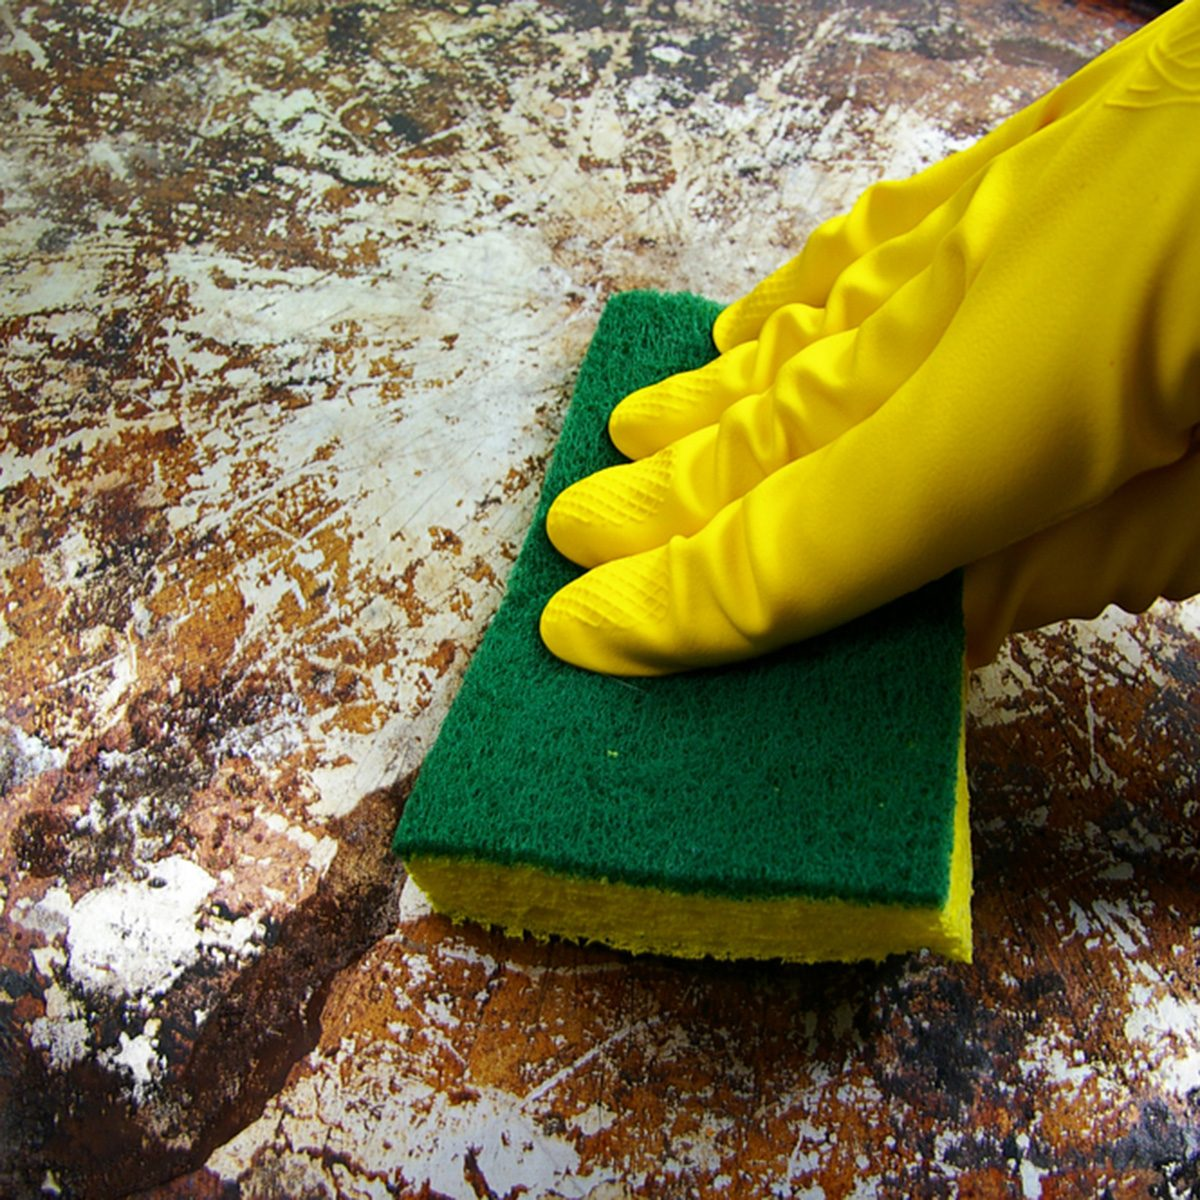 gloved hand scrubbing a dirty metal surface; Shutterstock ID 31317472; Job (TFH, TOH, RD, BNB, CWM, CM): Taste of Home